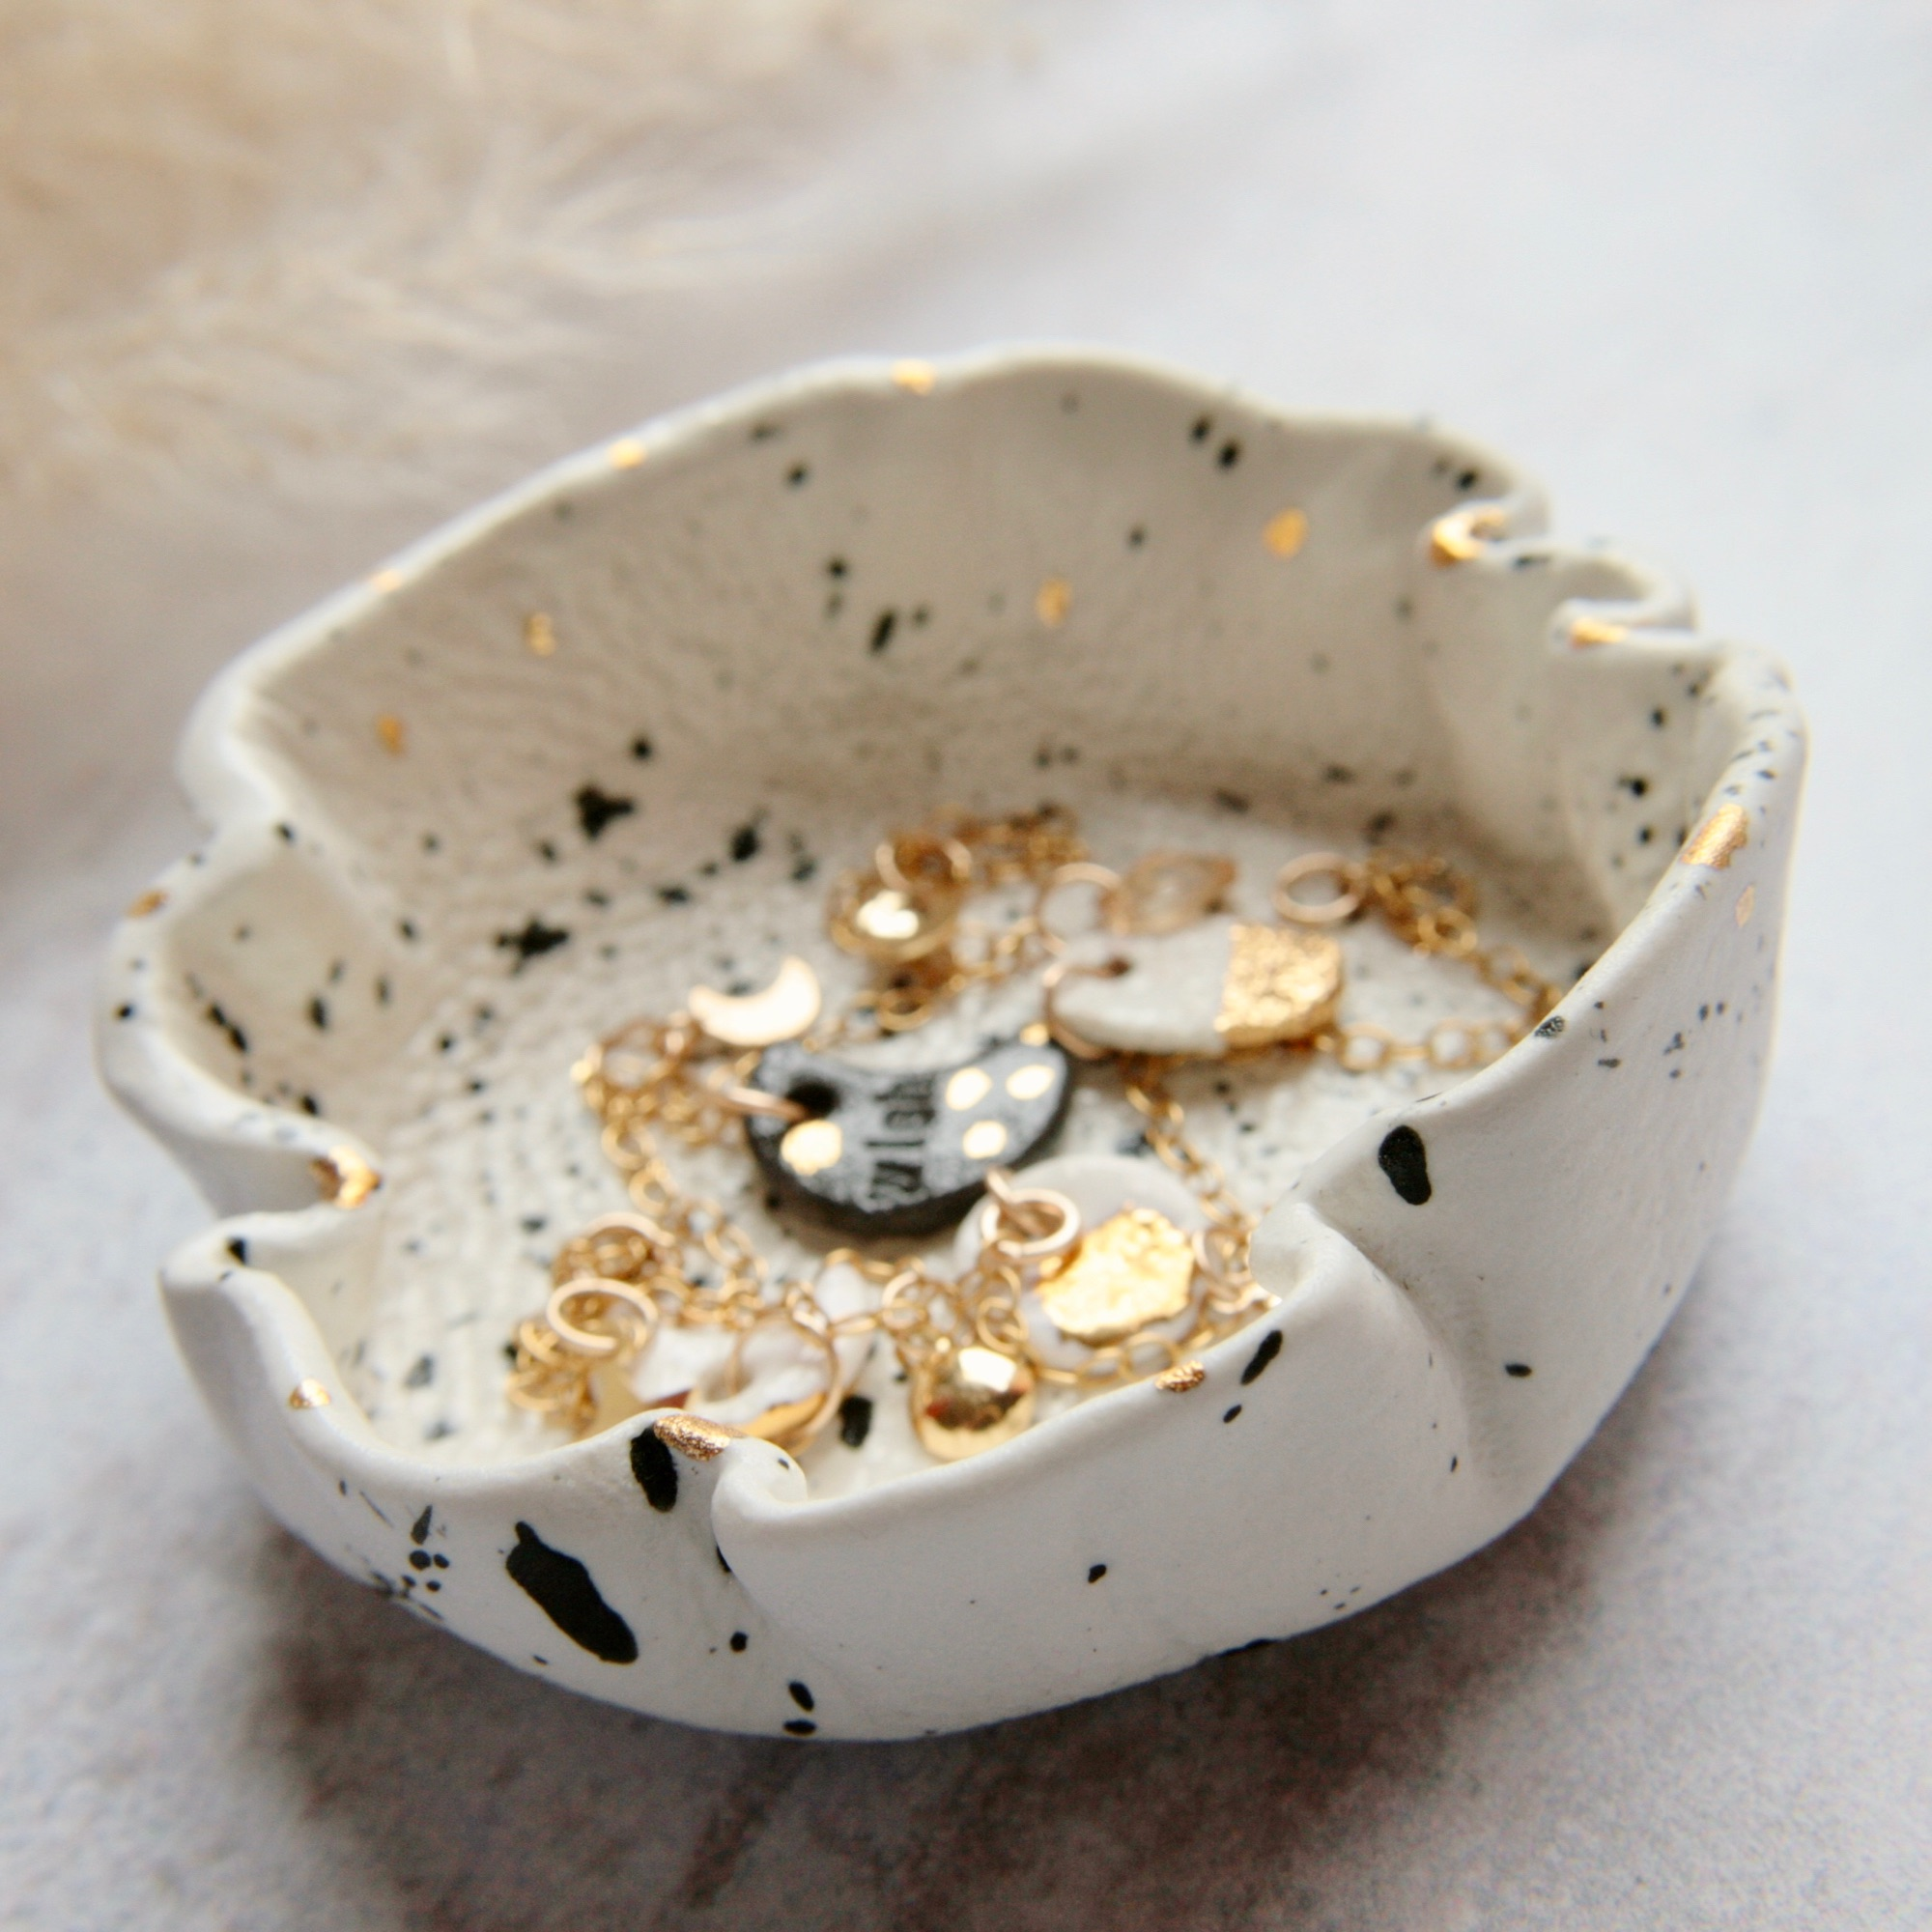 white ceramic dish splashed with black and gold  can be used as trinket or candle dish